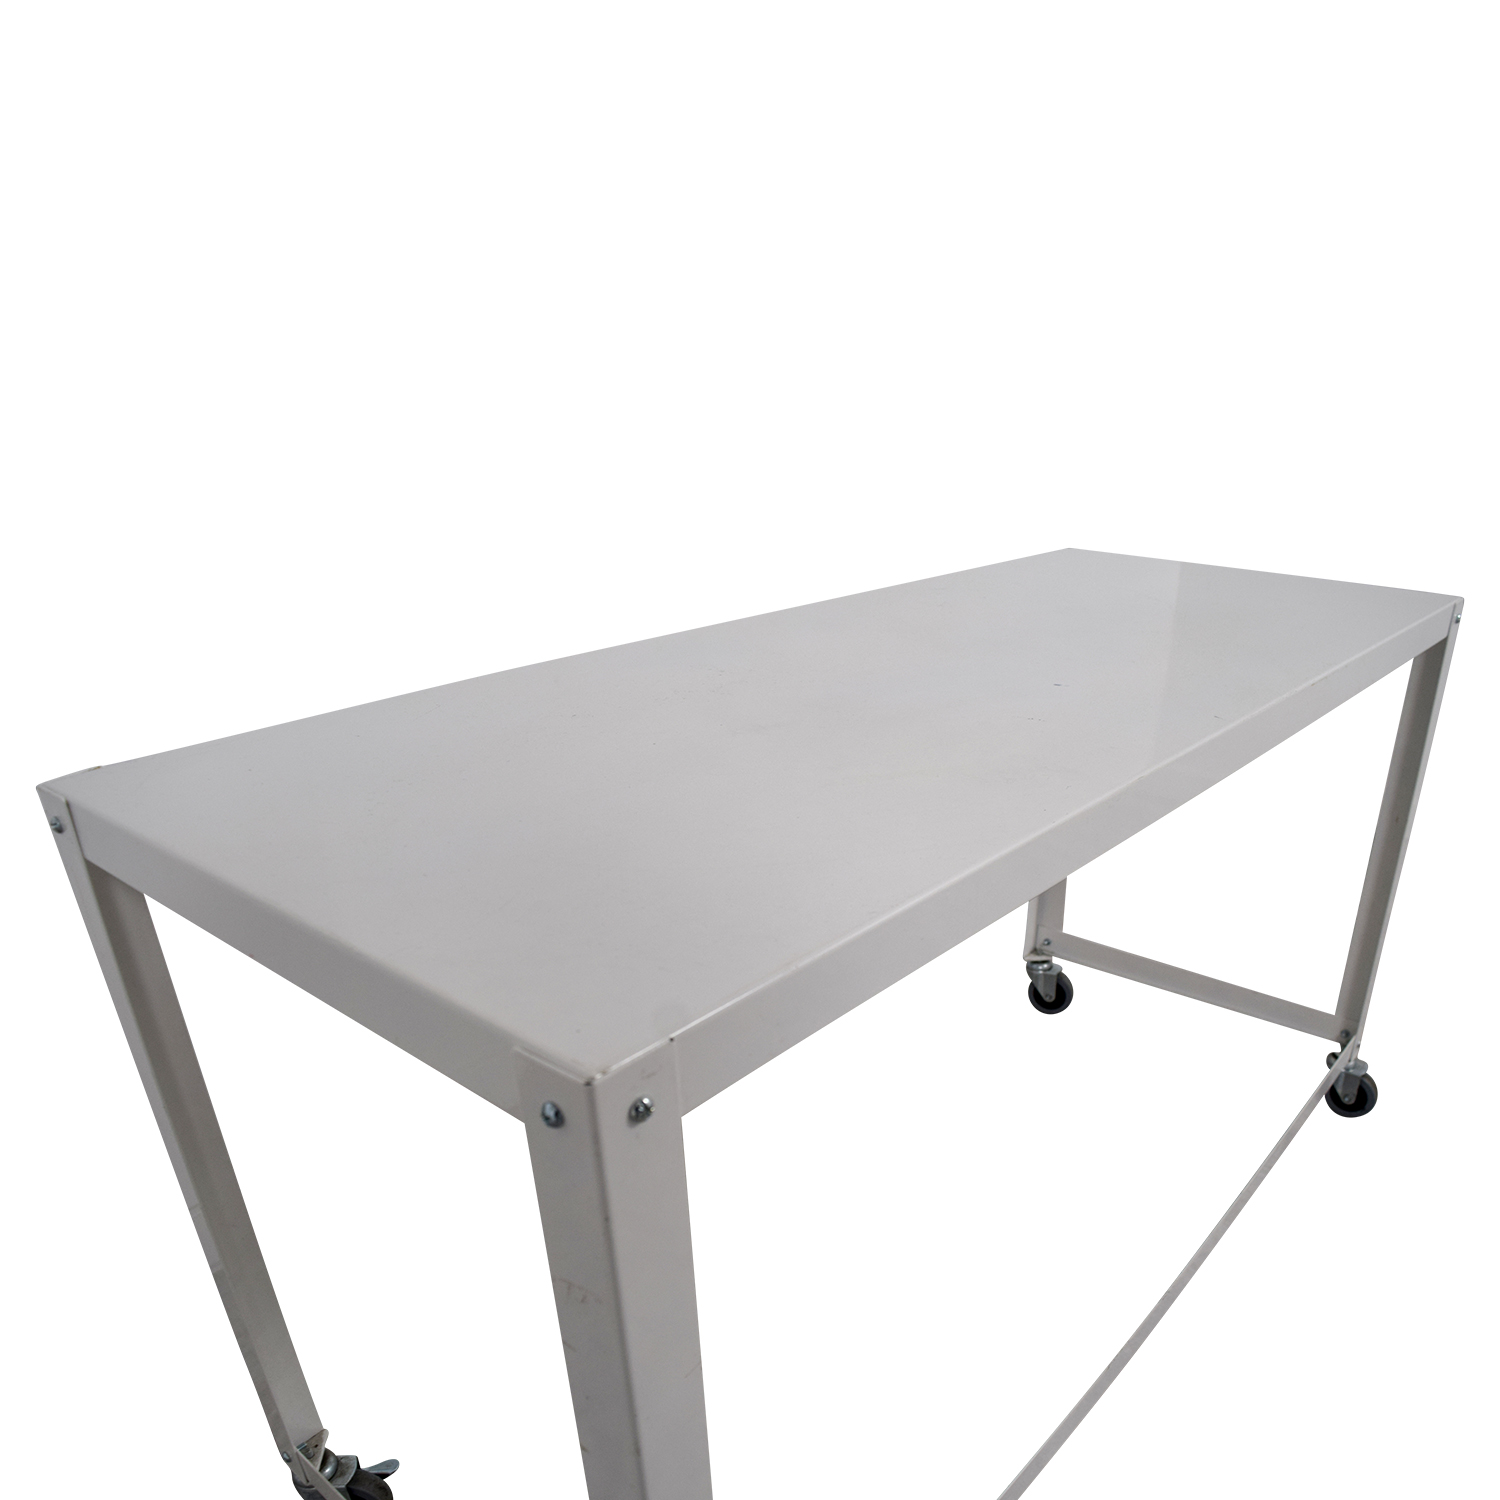 CB2 CB2 Go-Cart White Rolling Desk Tables